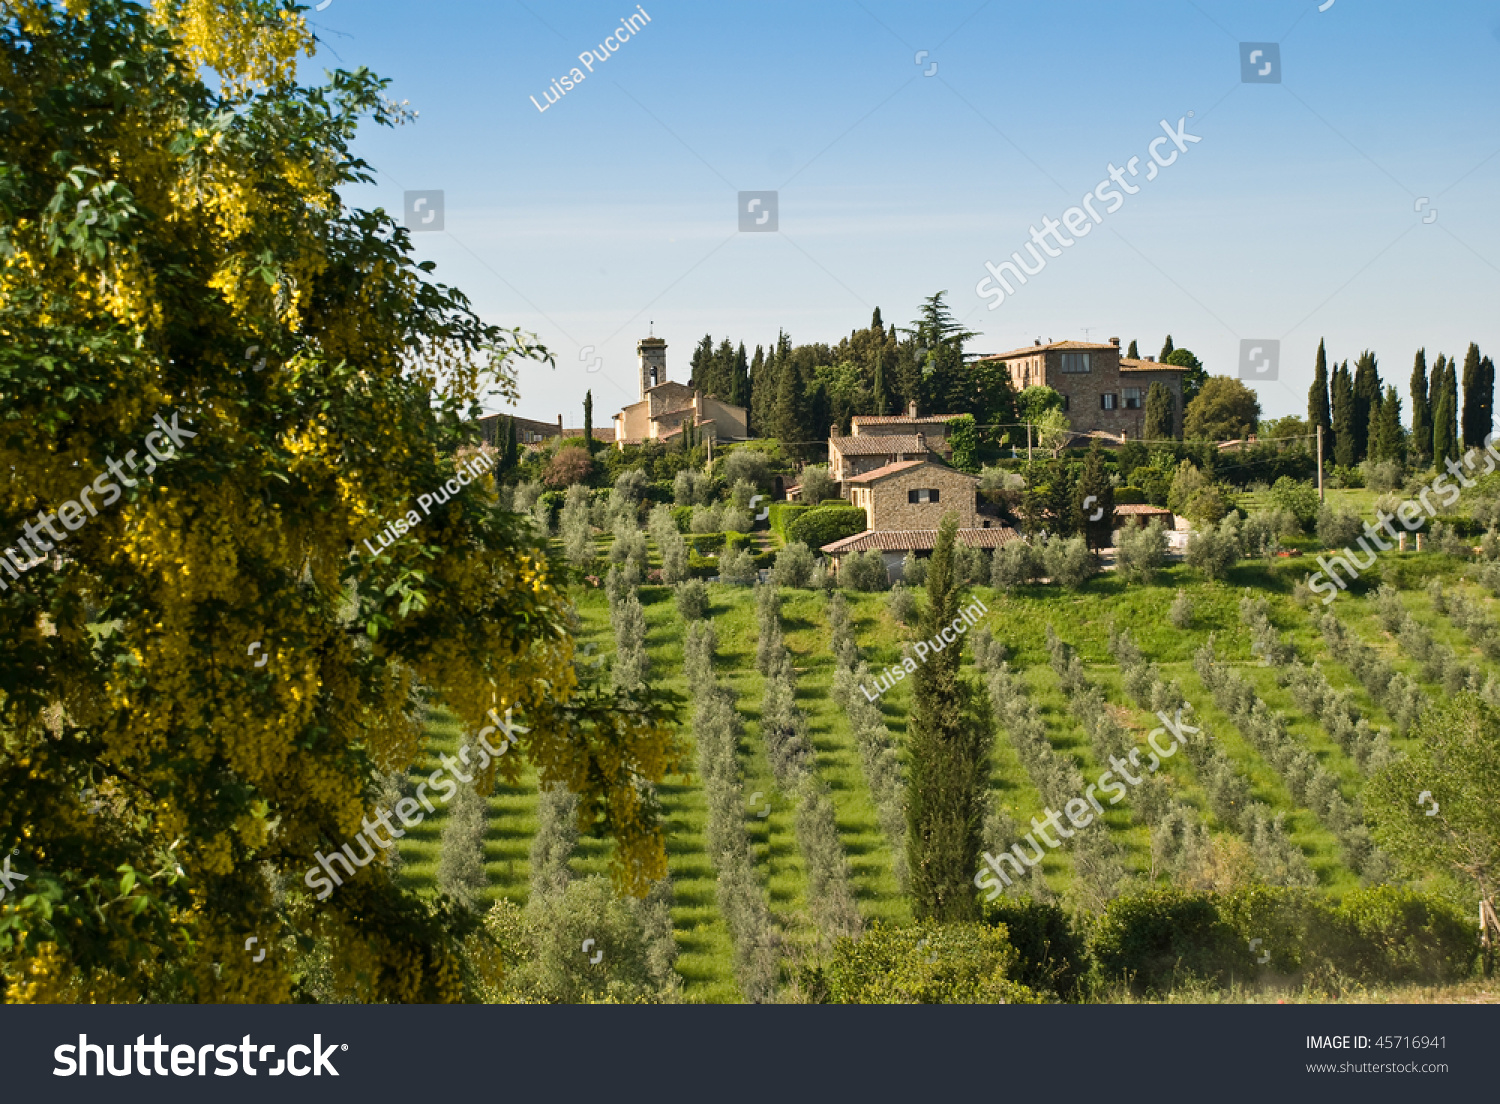 A Beautiful Landscape In A Typical Tuscany 39 S Village